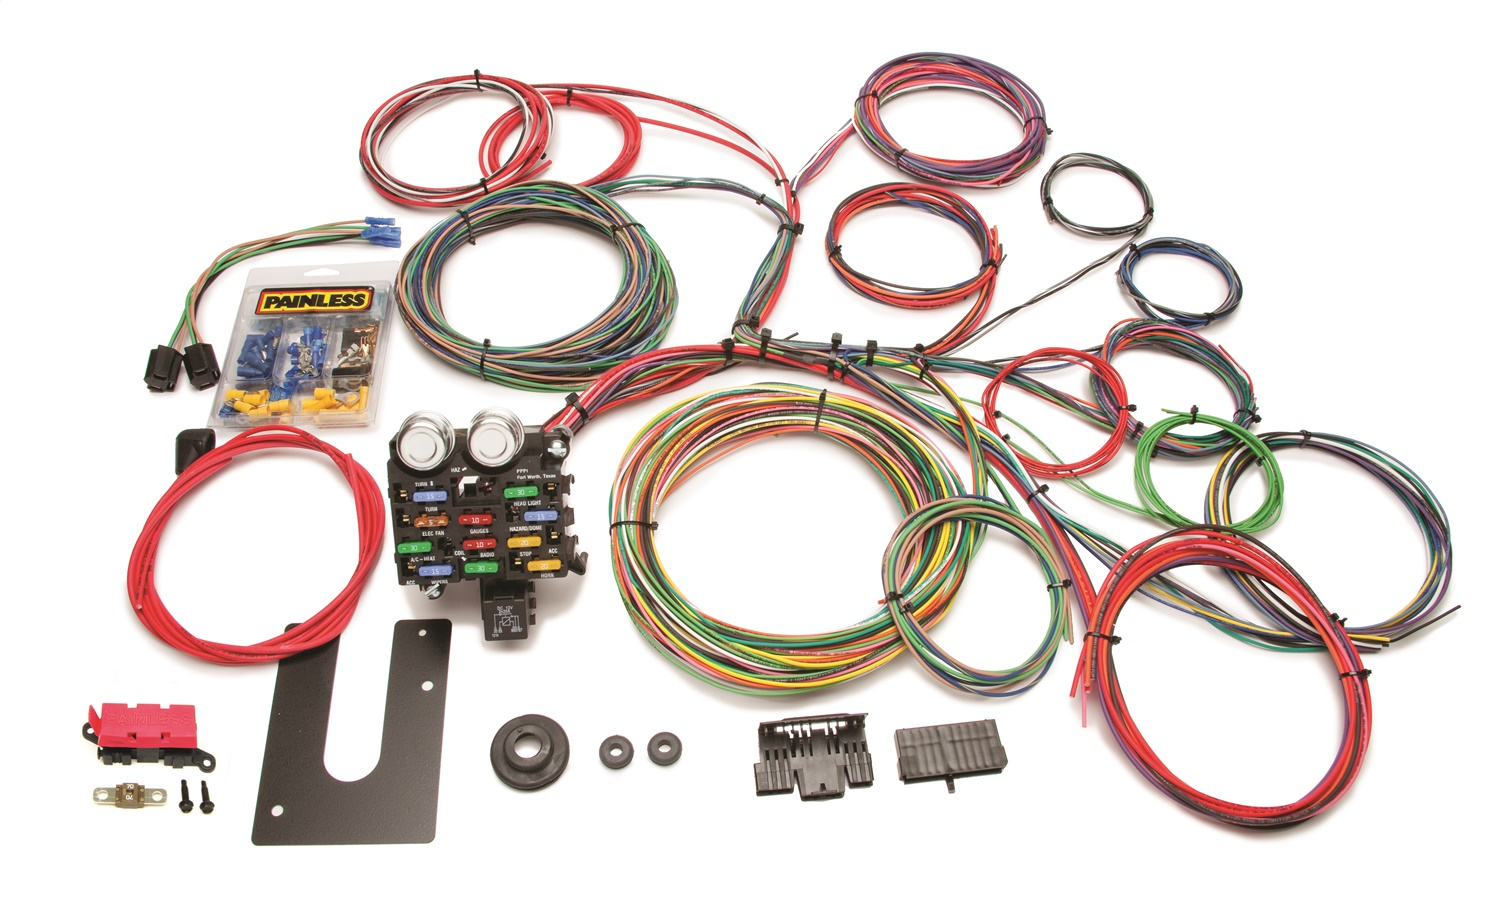 Painless Wiring 10102 21 Circuit Clic Customizable Chis ... on 5.3 vortec swap harness, car harness, duraspark harness, 1972 chevy truck harness, dodge ram injector harness, ford 5.0 fuel injection harness, fuel injector harness, horse team harness, chevy tbi harness, rover series 3 diesel harness, 5 point harness, indestructible dog harness, racing seat harness, bully dog harness, radio harness, electrical harness, painless fuse box, horse driving harness, painless engine harness, front lead dog harness,